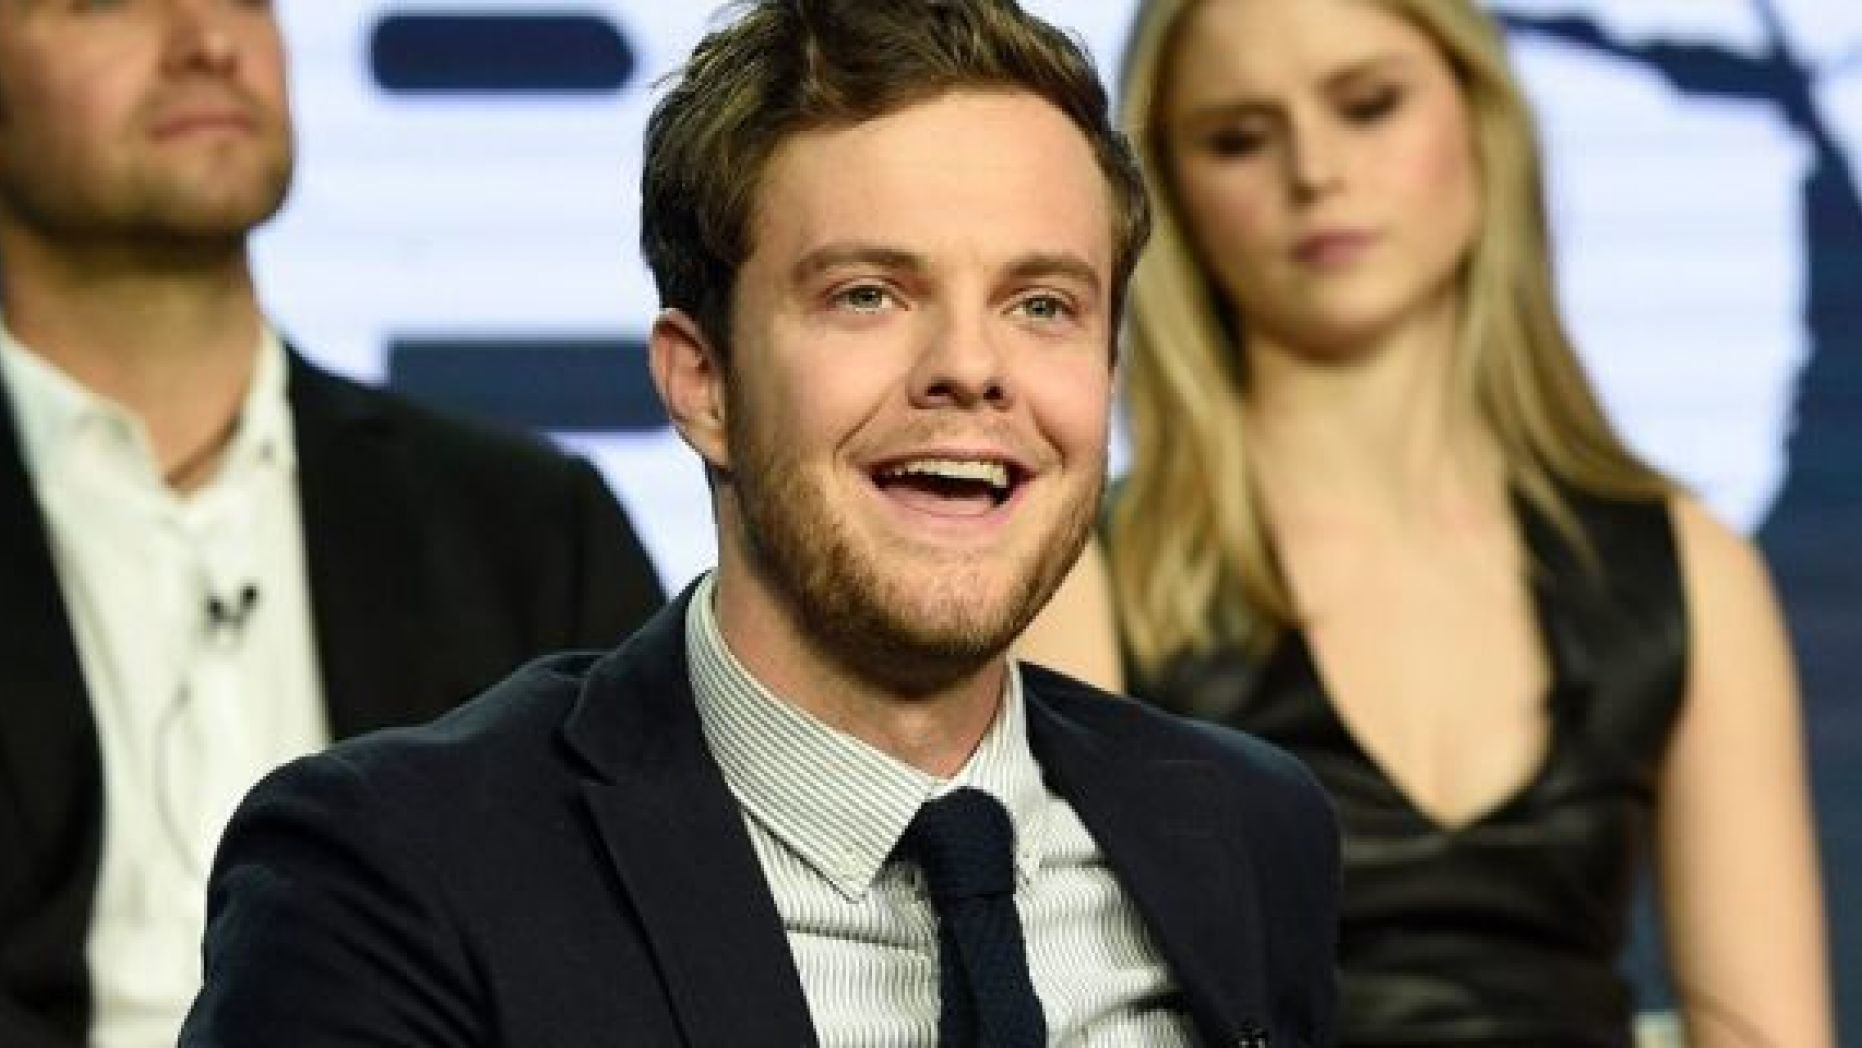 """Jack Quaid spoke about growing up with his famous parents, Dennis Quaid and Meg Ryan, during the Amazon Prime Video """"The Boys"""" panel at the Winter Television Critics Association Press Tour on Wednesday, Feb. 13, 2019, in Pasadena, Calif."""